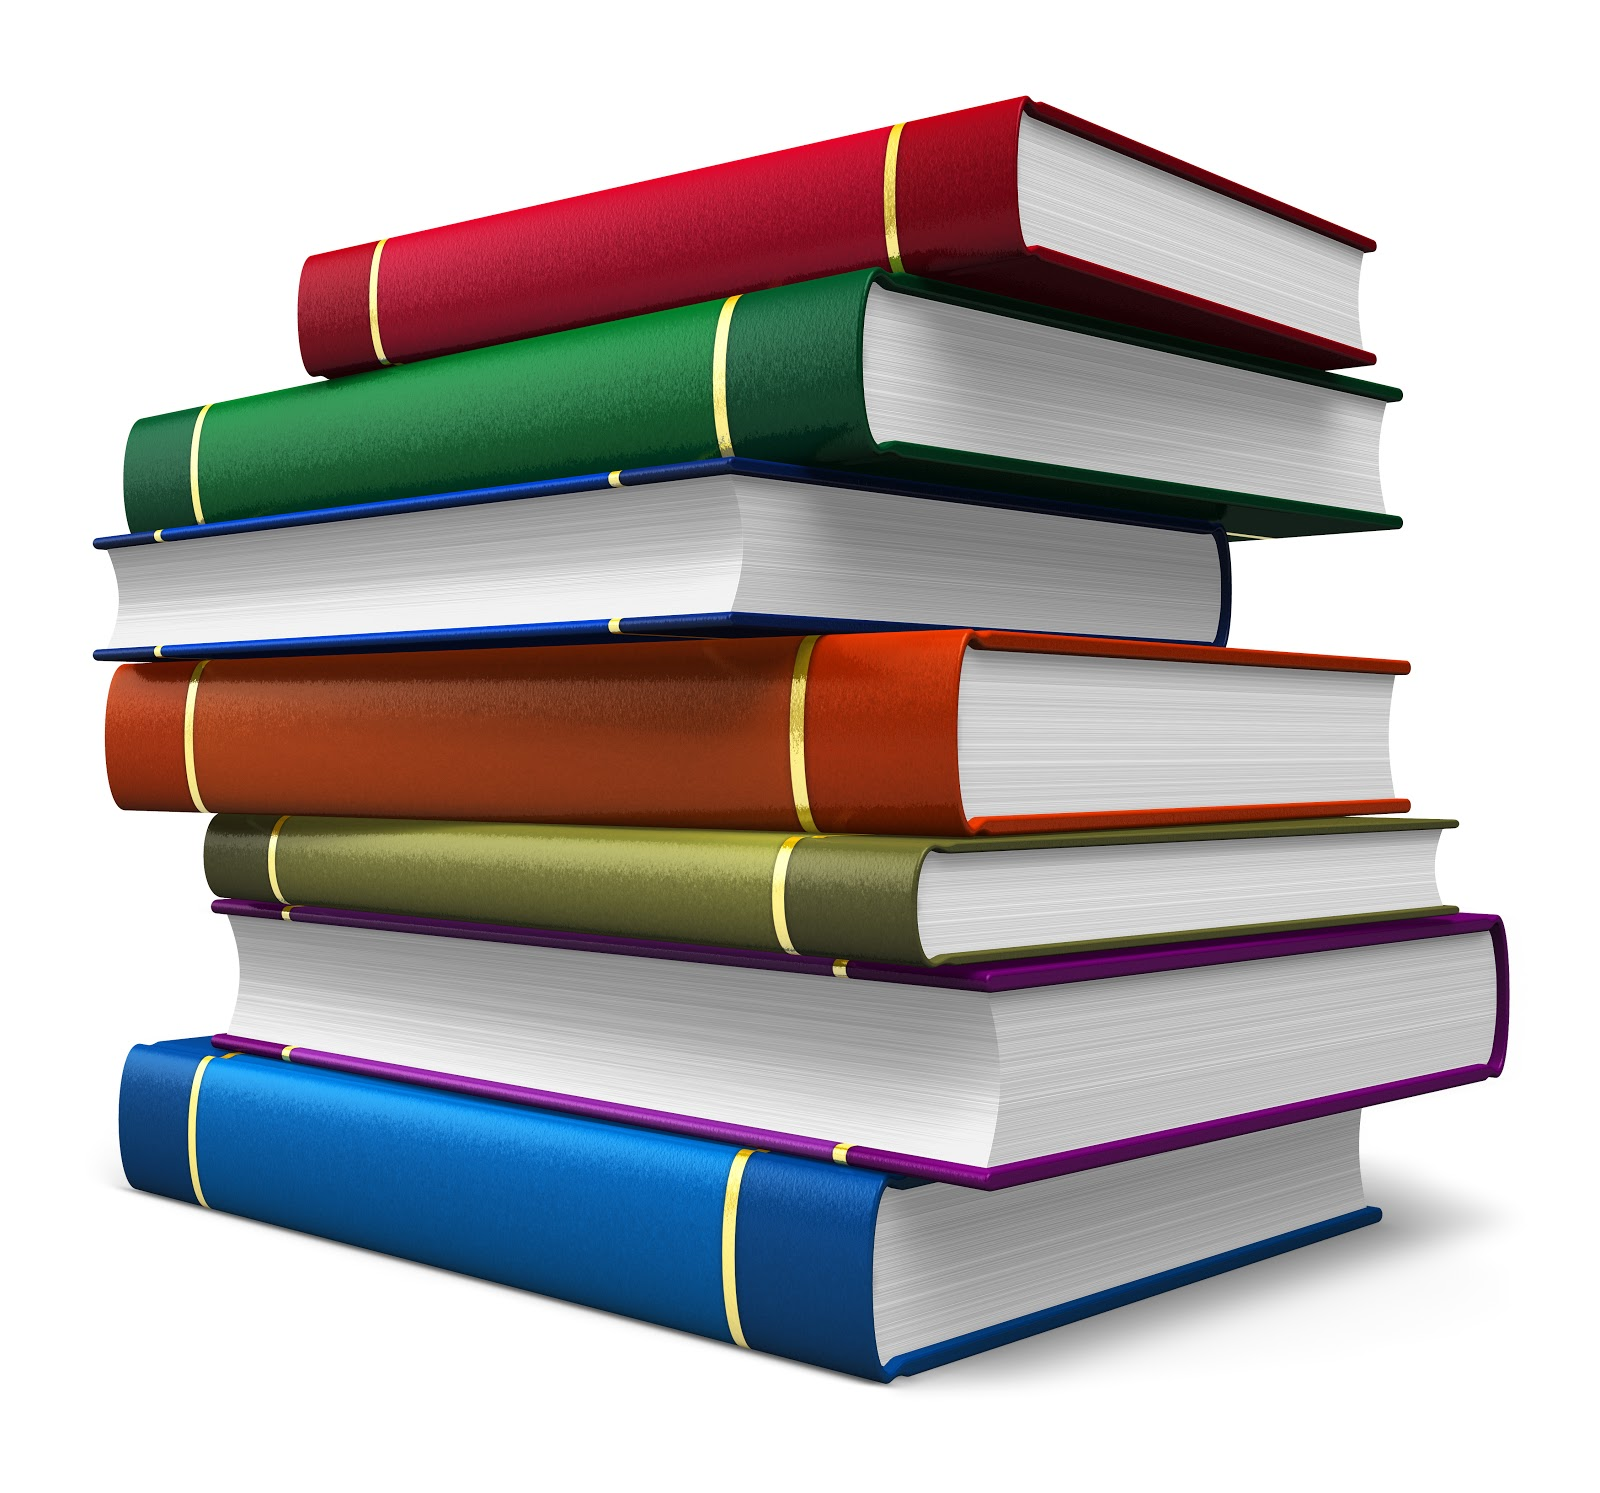 lifetime learning college prep choosing your high school classes choosing your high school classes can help you when it comes to a getting into college and b getting into college courses and doing well